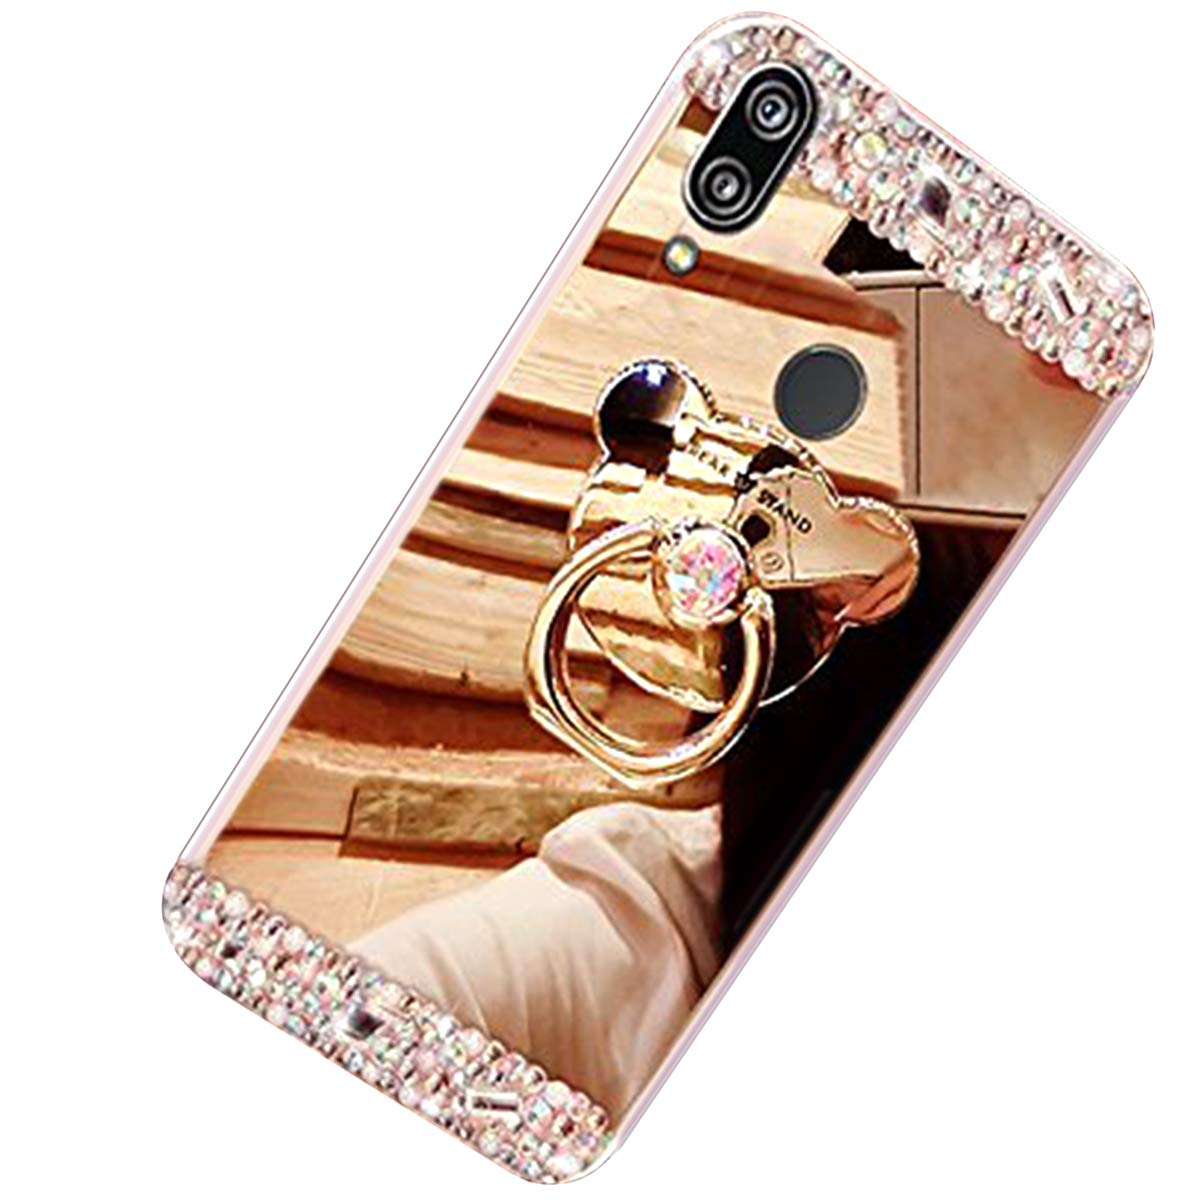 Huawei P20 case, Huawei P20 Mirror Case, Huawei P20 Glitter Case Cover, Felfy Glitter Makeup Mirror Effect Luxury Crystal Rhinestone [Anti-Scratch]+[Abrasion Resistance]+[Drop Protection] with Bear Back Ring Holder Bling Shiny Bumper Skin Protective Cover